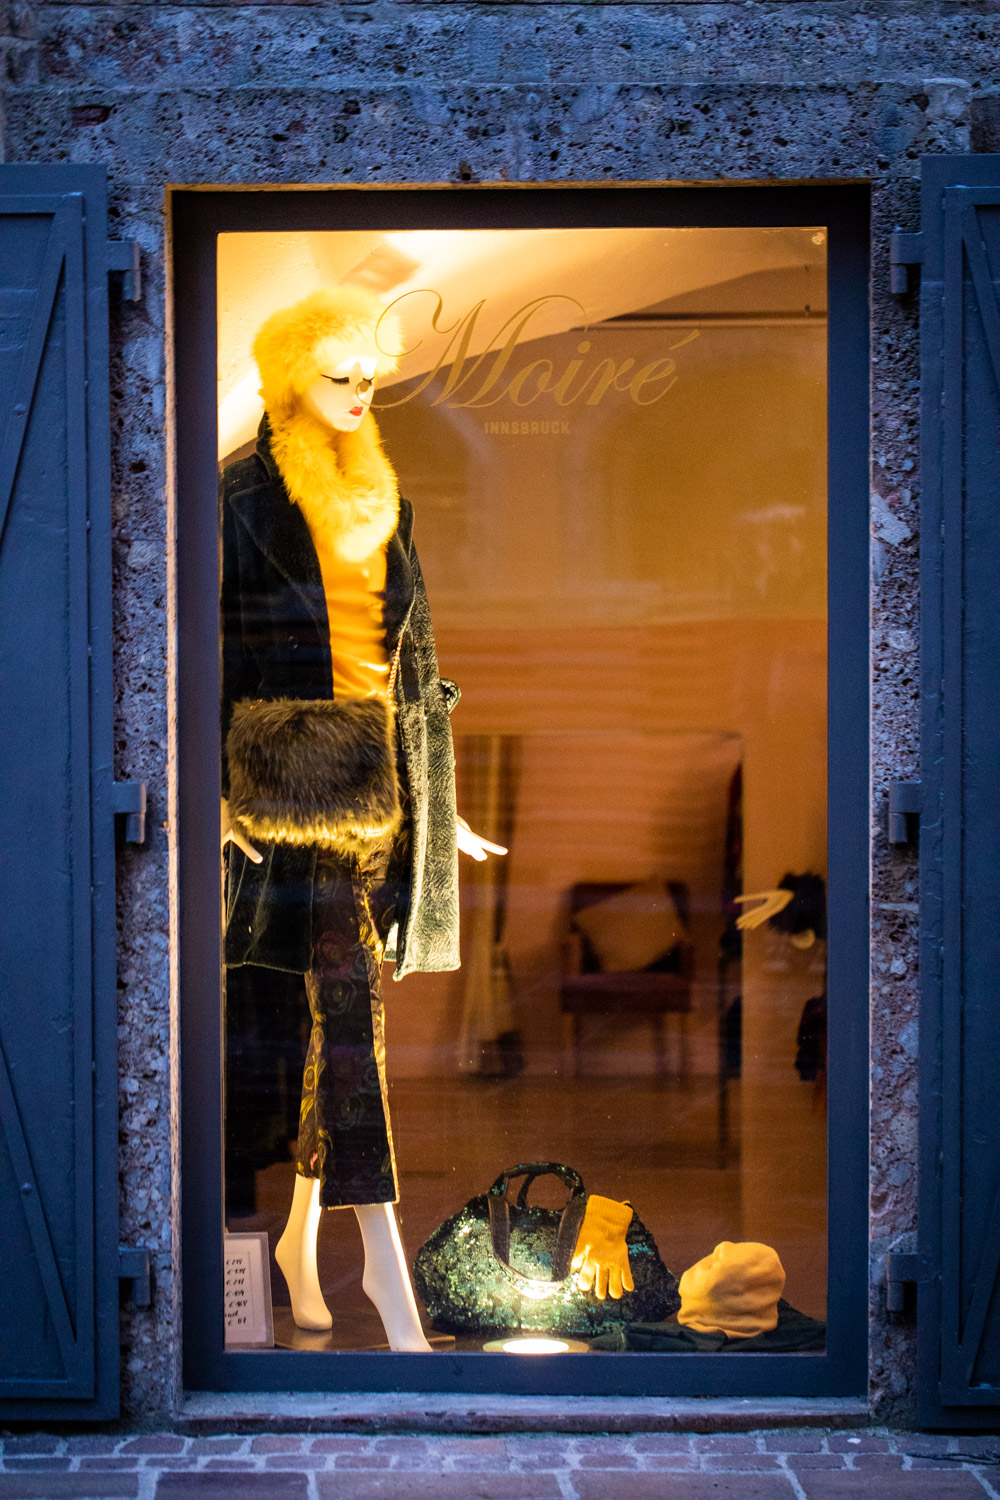 Moire Shop Window.jpg